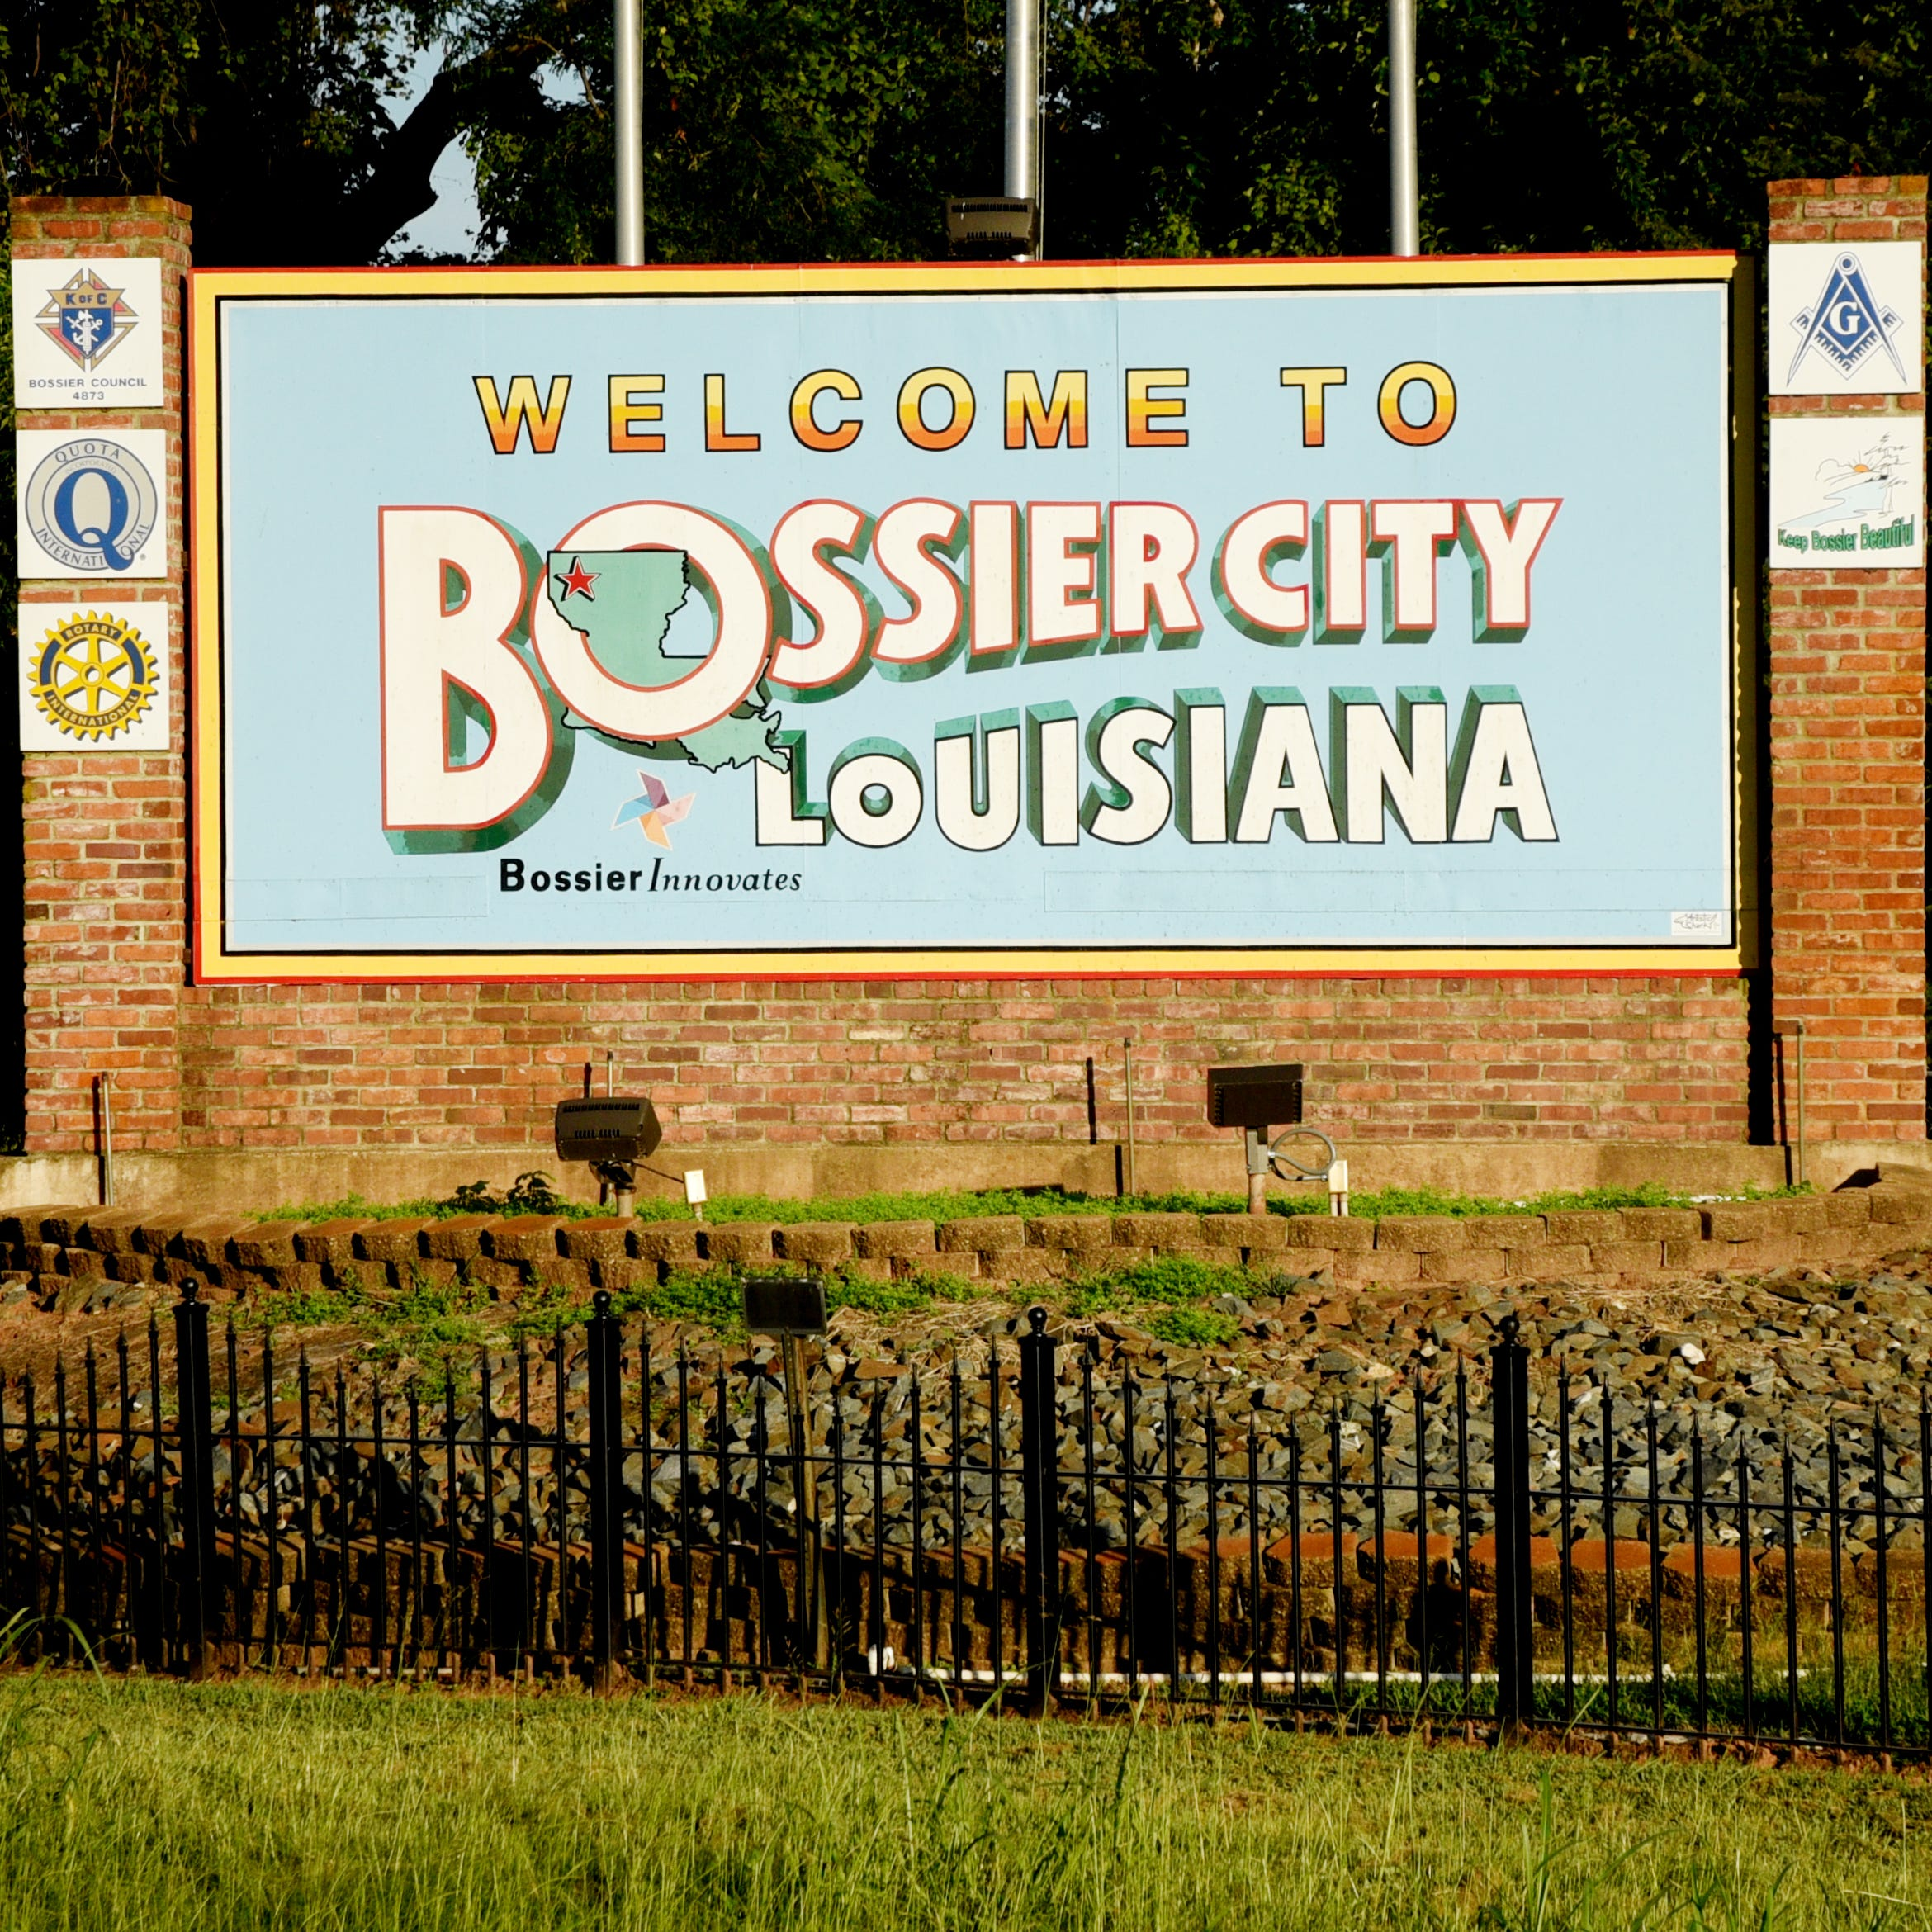 Bossier City Is Ranked As State S Best Small City For Small Businesses Clique agora para jogar kof wing ex v1.0! bossier city is ranked as state s best